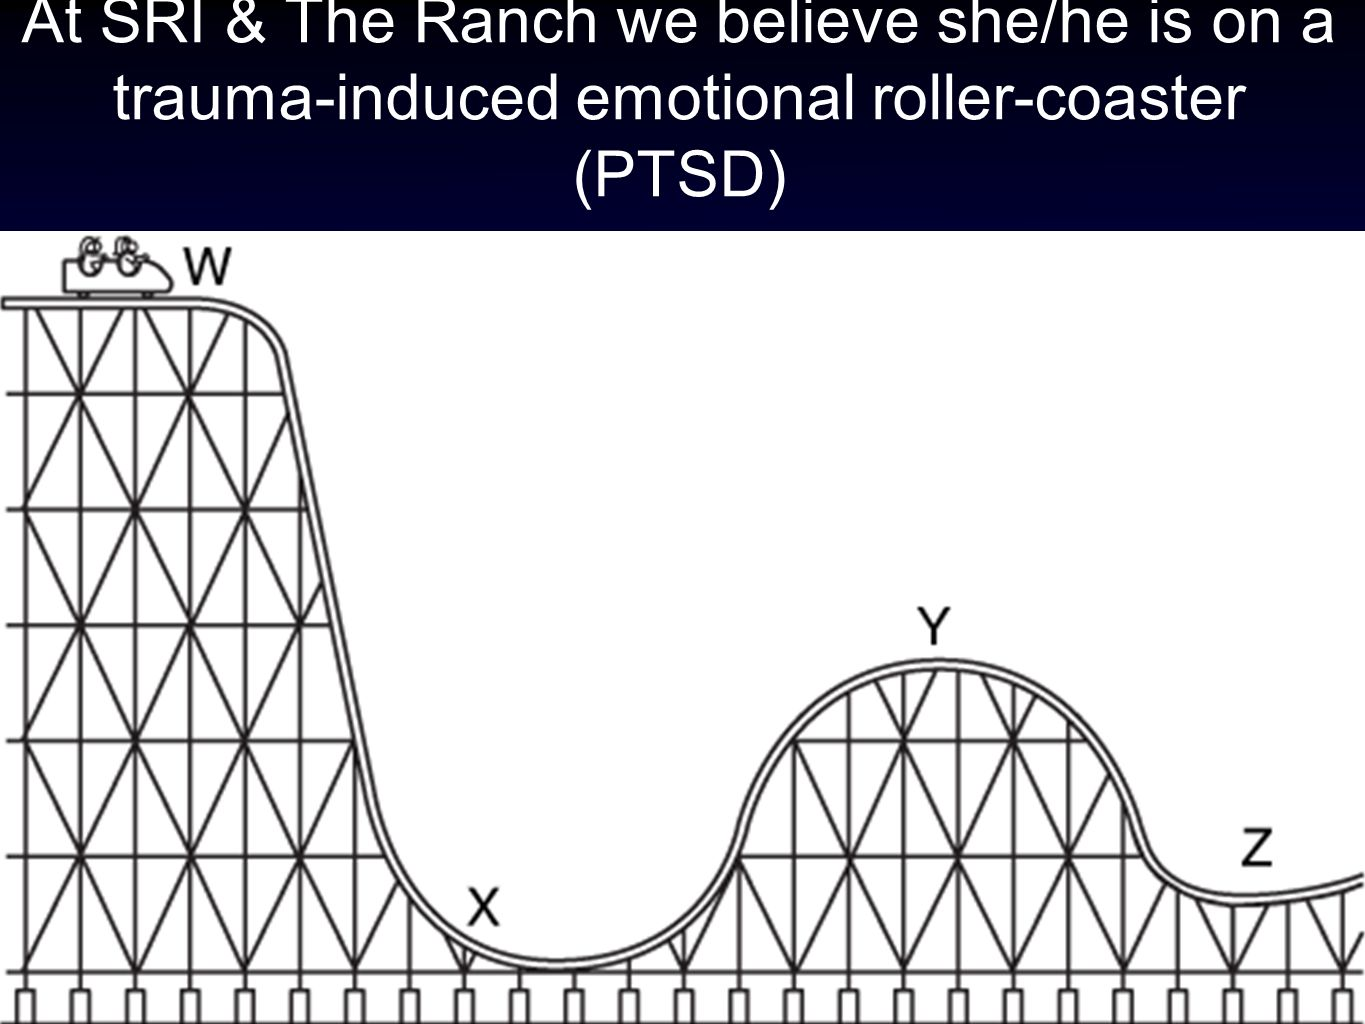 At SRI & The Ranch we believe she/he is on a trauma-induced emotional roller-coaster (PTSD)